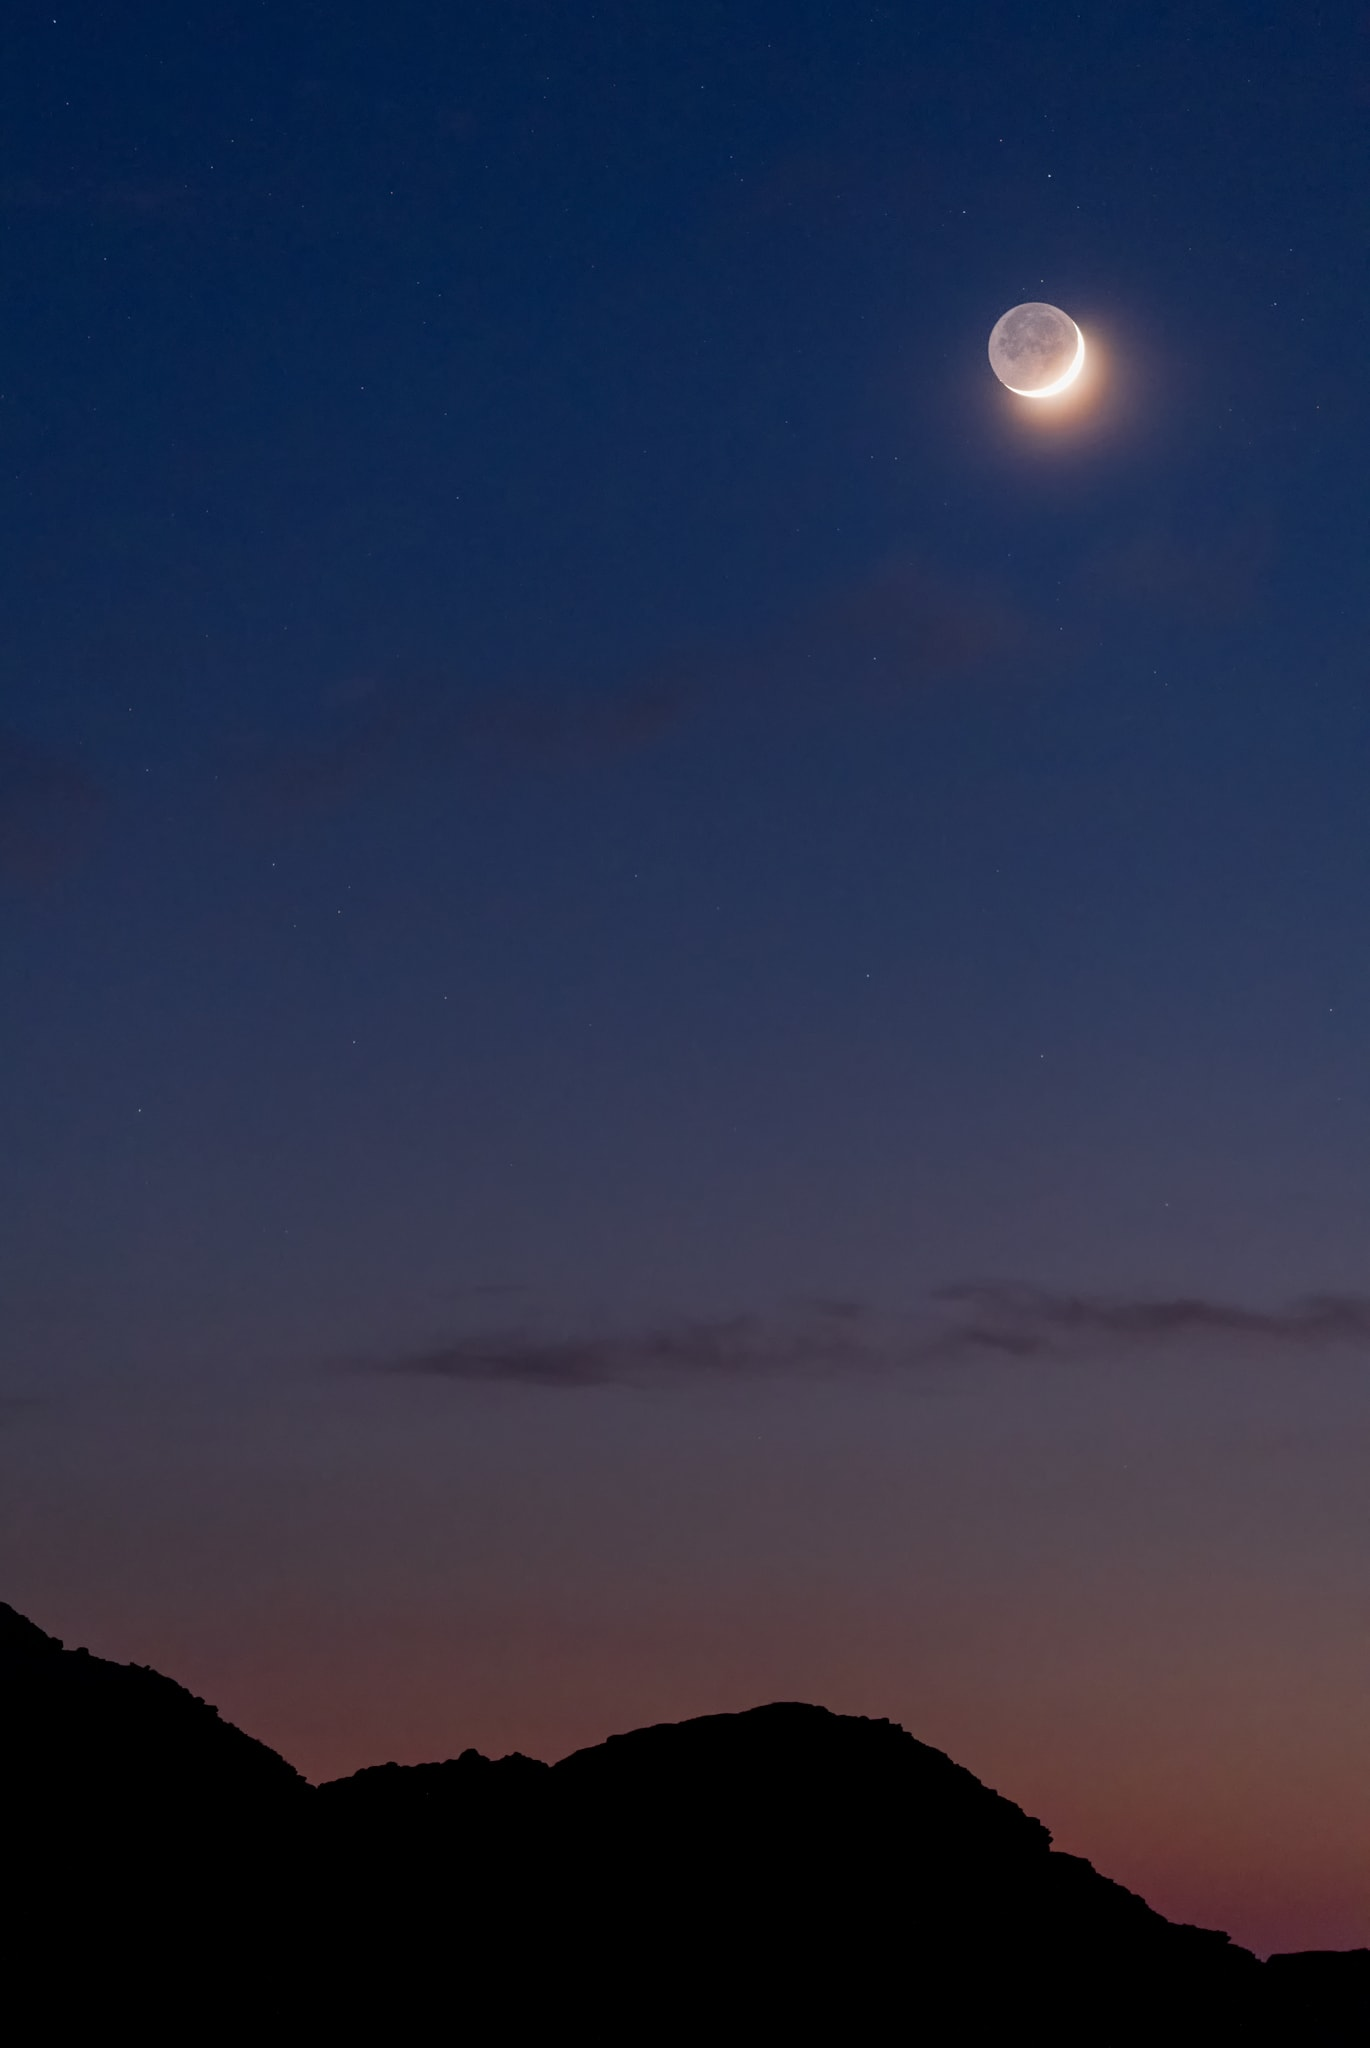 Earthshine | Menorca, Spain